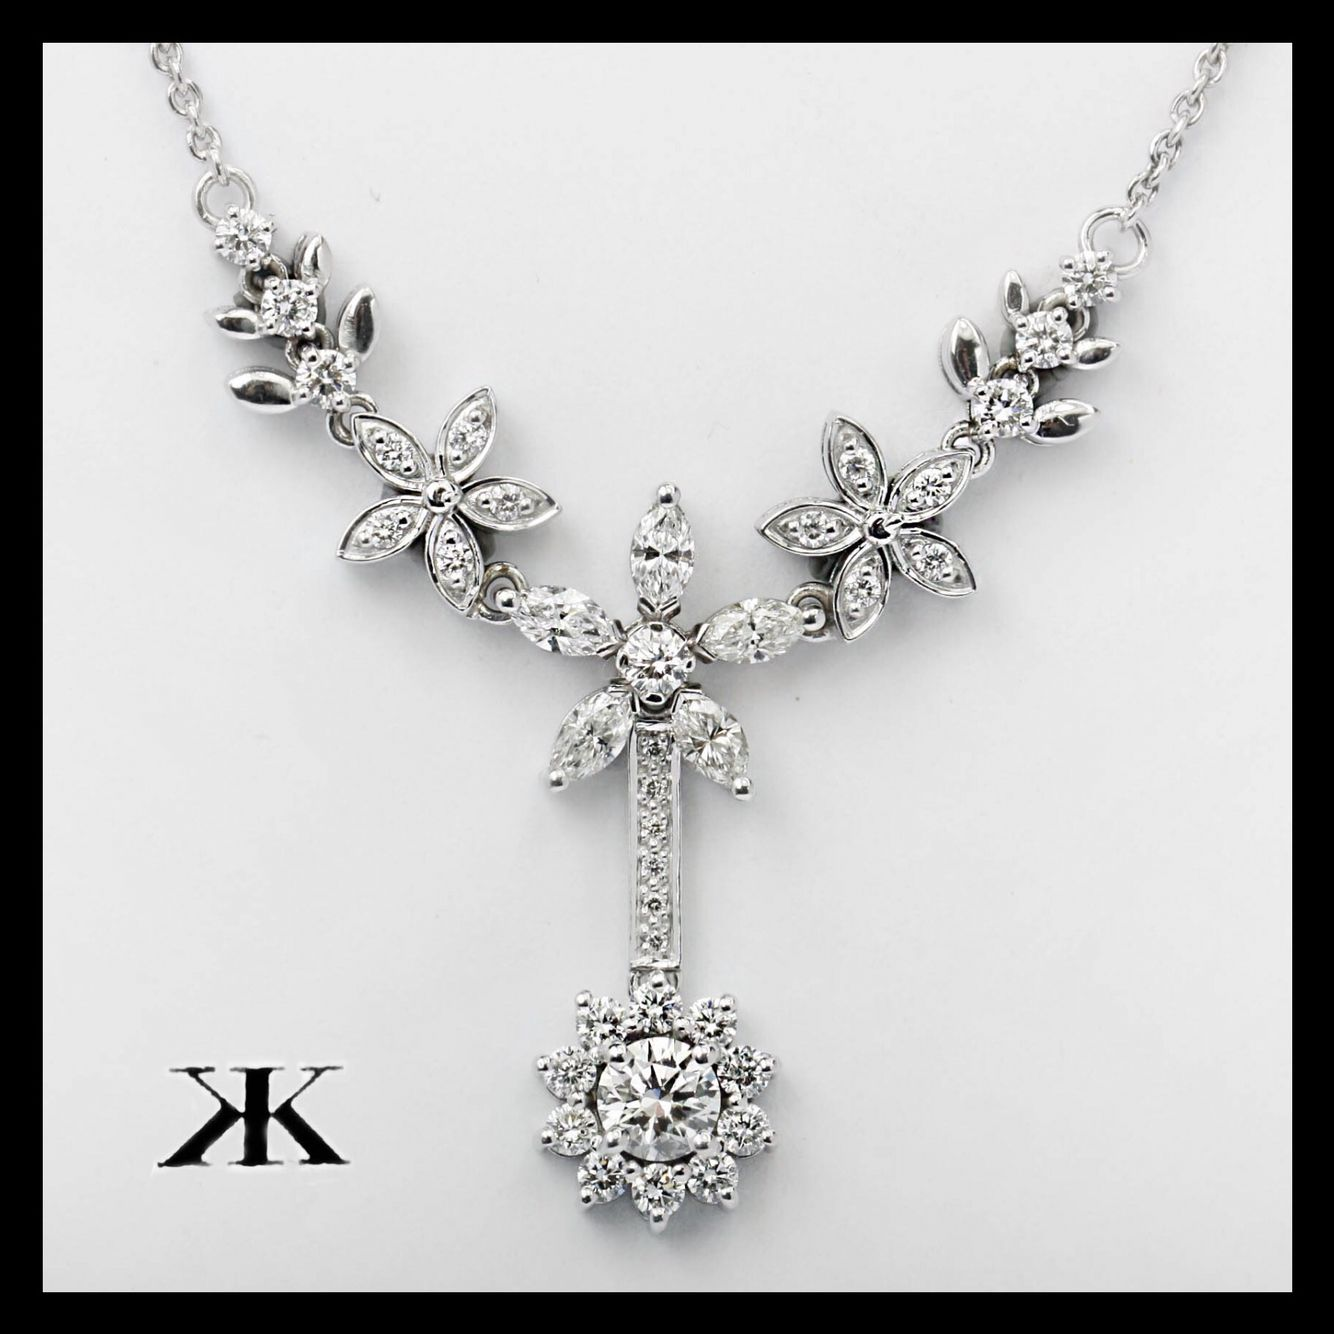 #diamondnecklace#diamondjewellery#custommade#kalfinjewellery#diamondjewellery#diamondringsmelbourne#engagementringsmelbourne#weddingrings #genstring #jewellersmelbourne #cbdjewellers #design #collinsst #Melbourne #diamondjewellery #diamondhalorings #custommade  http://www.kalfin.com.au/collections/couture/